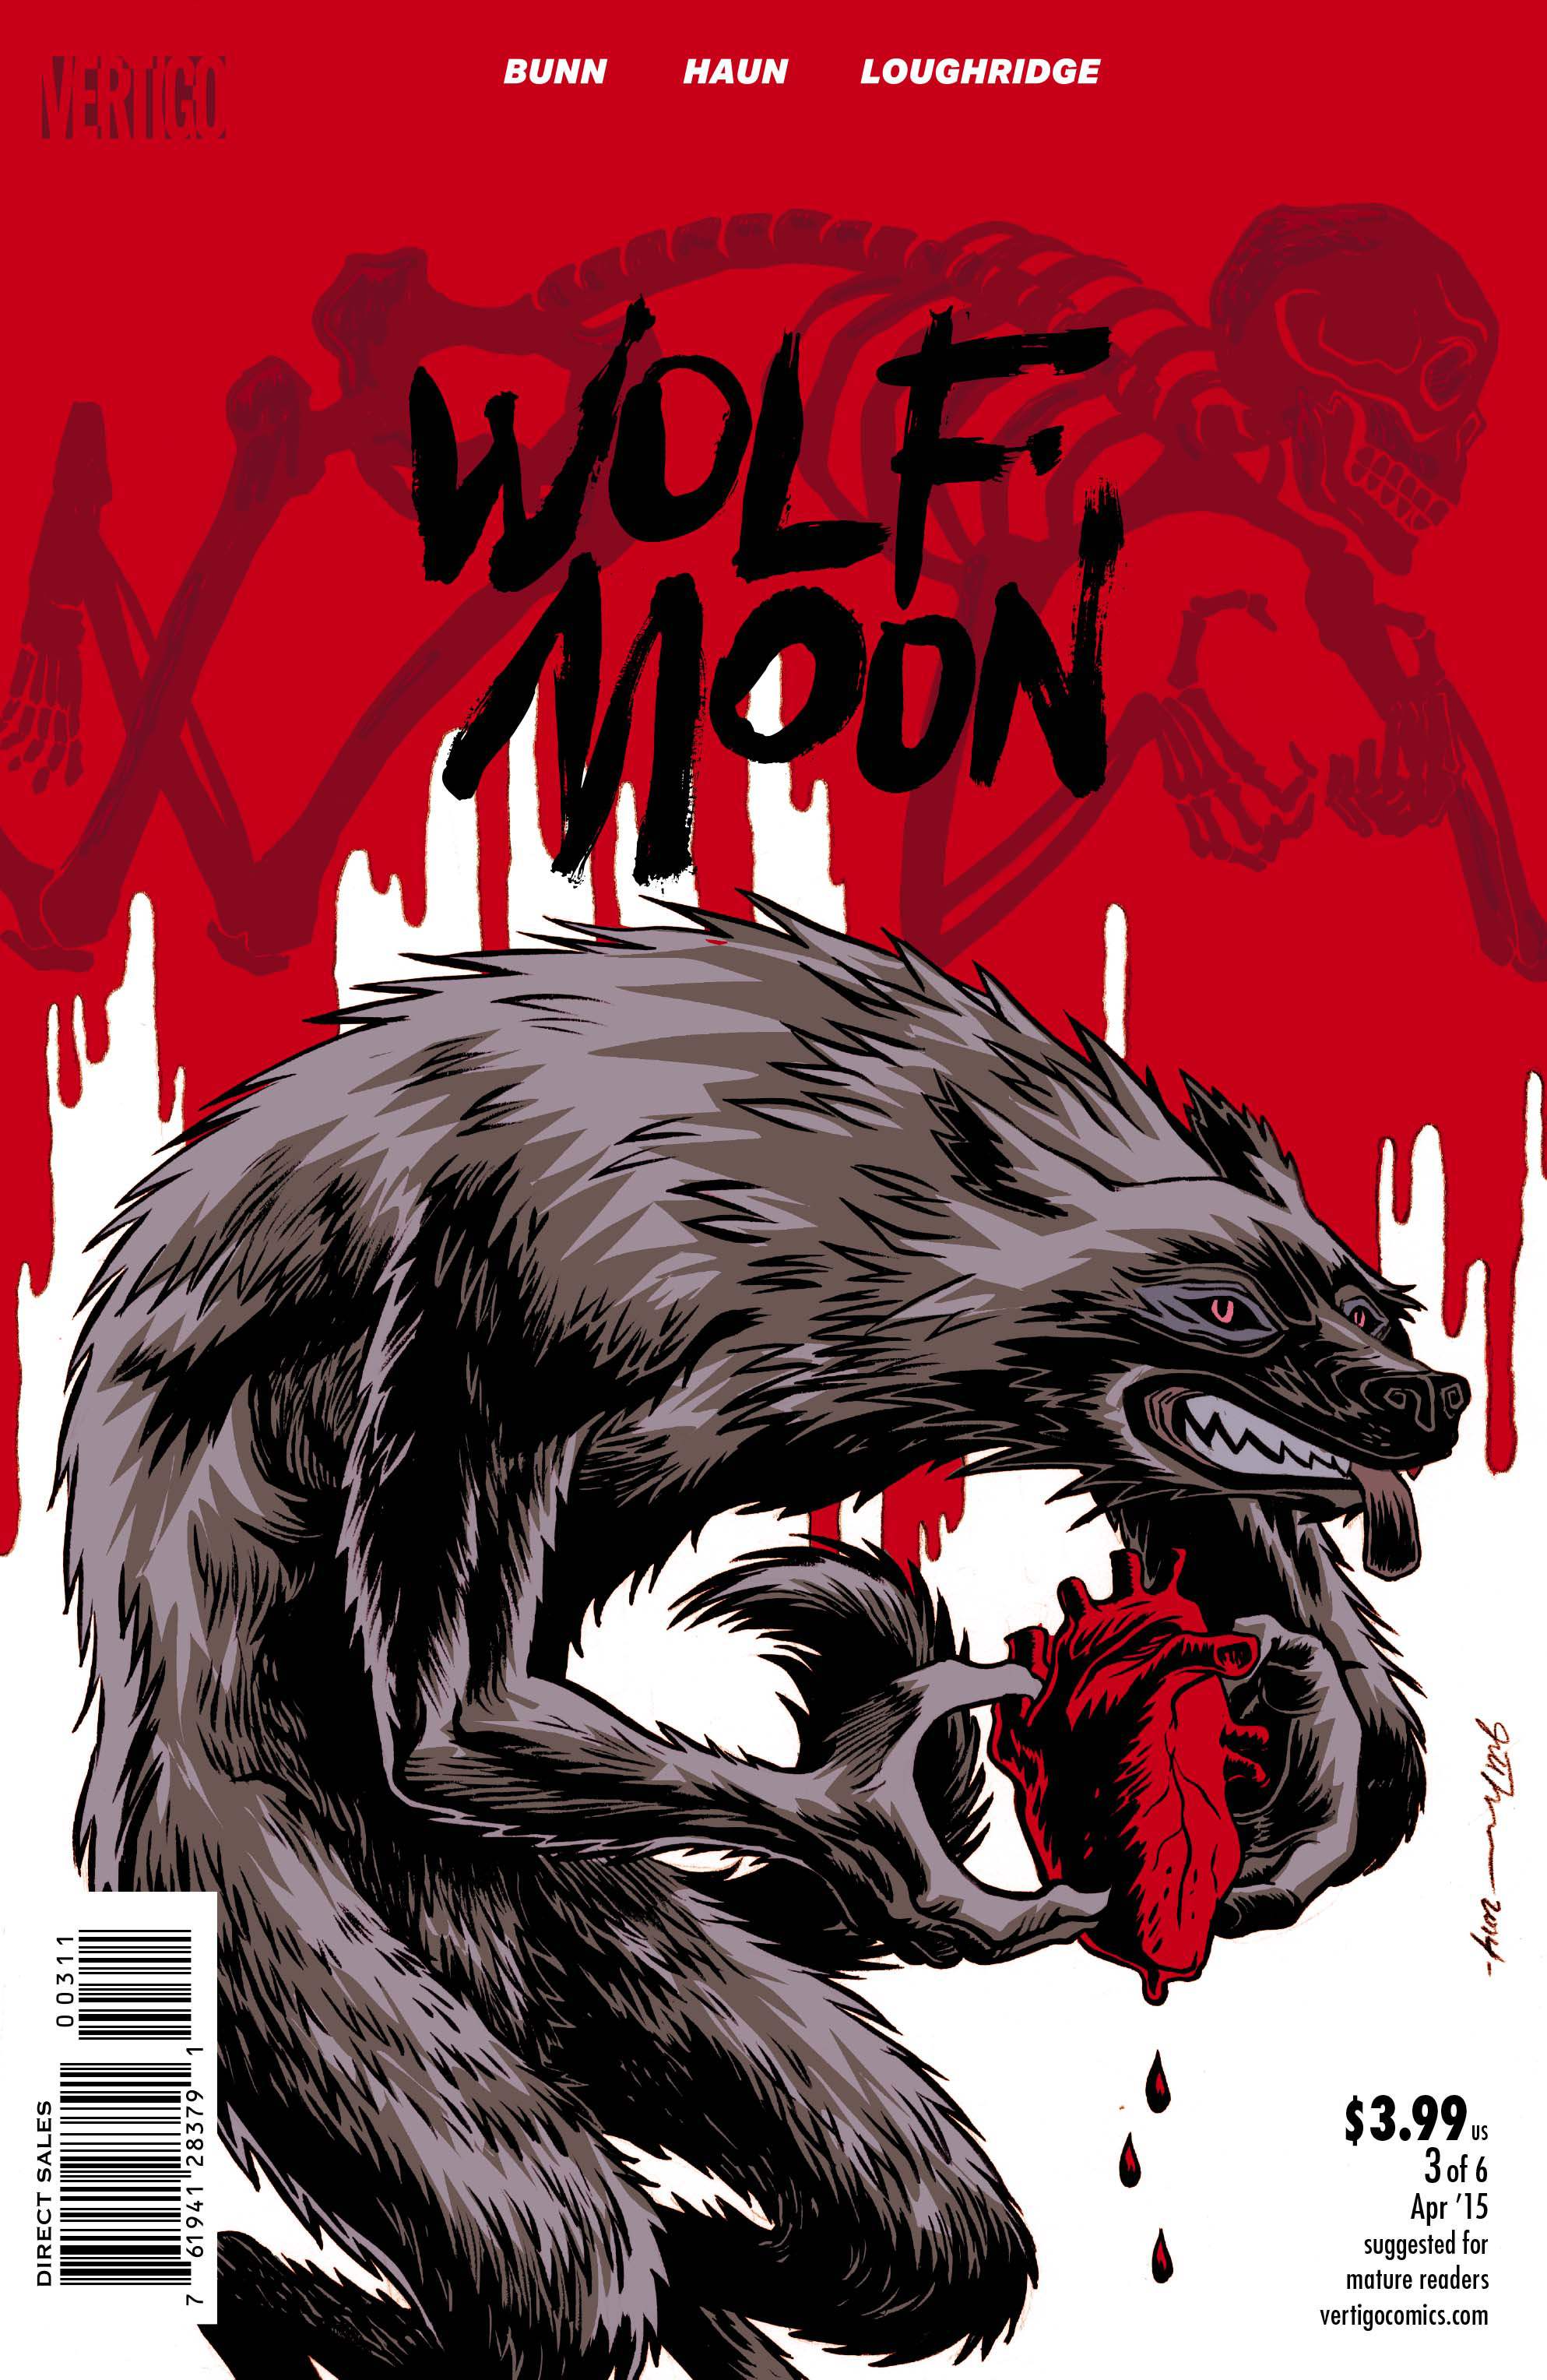 WOLF MOON #3 (OF 6)